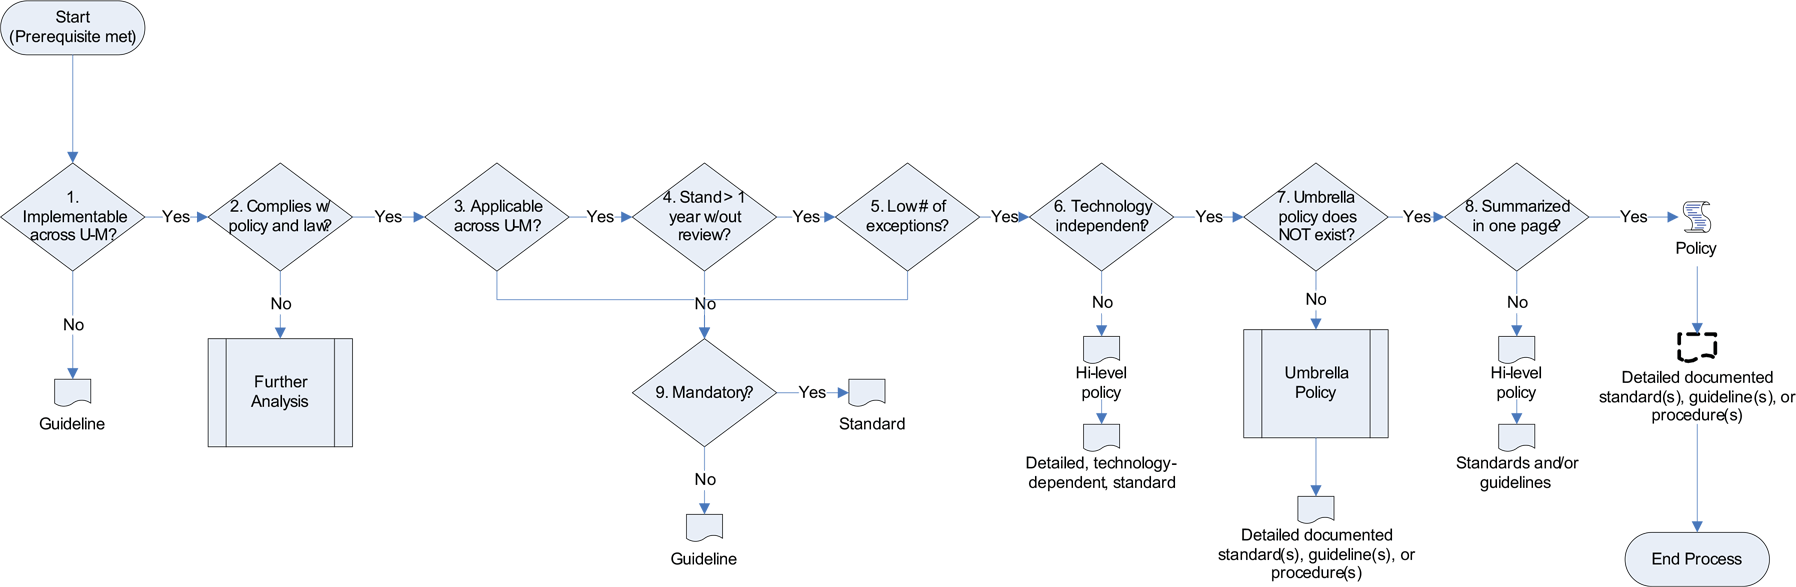 Appendix 4: IT Policy Decision Flow Chart